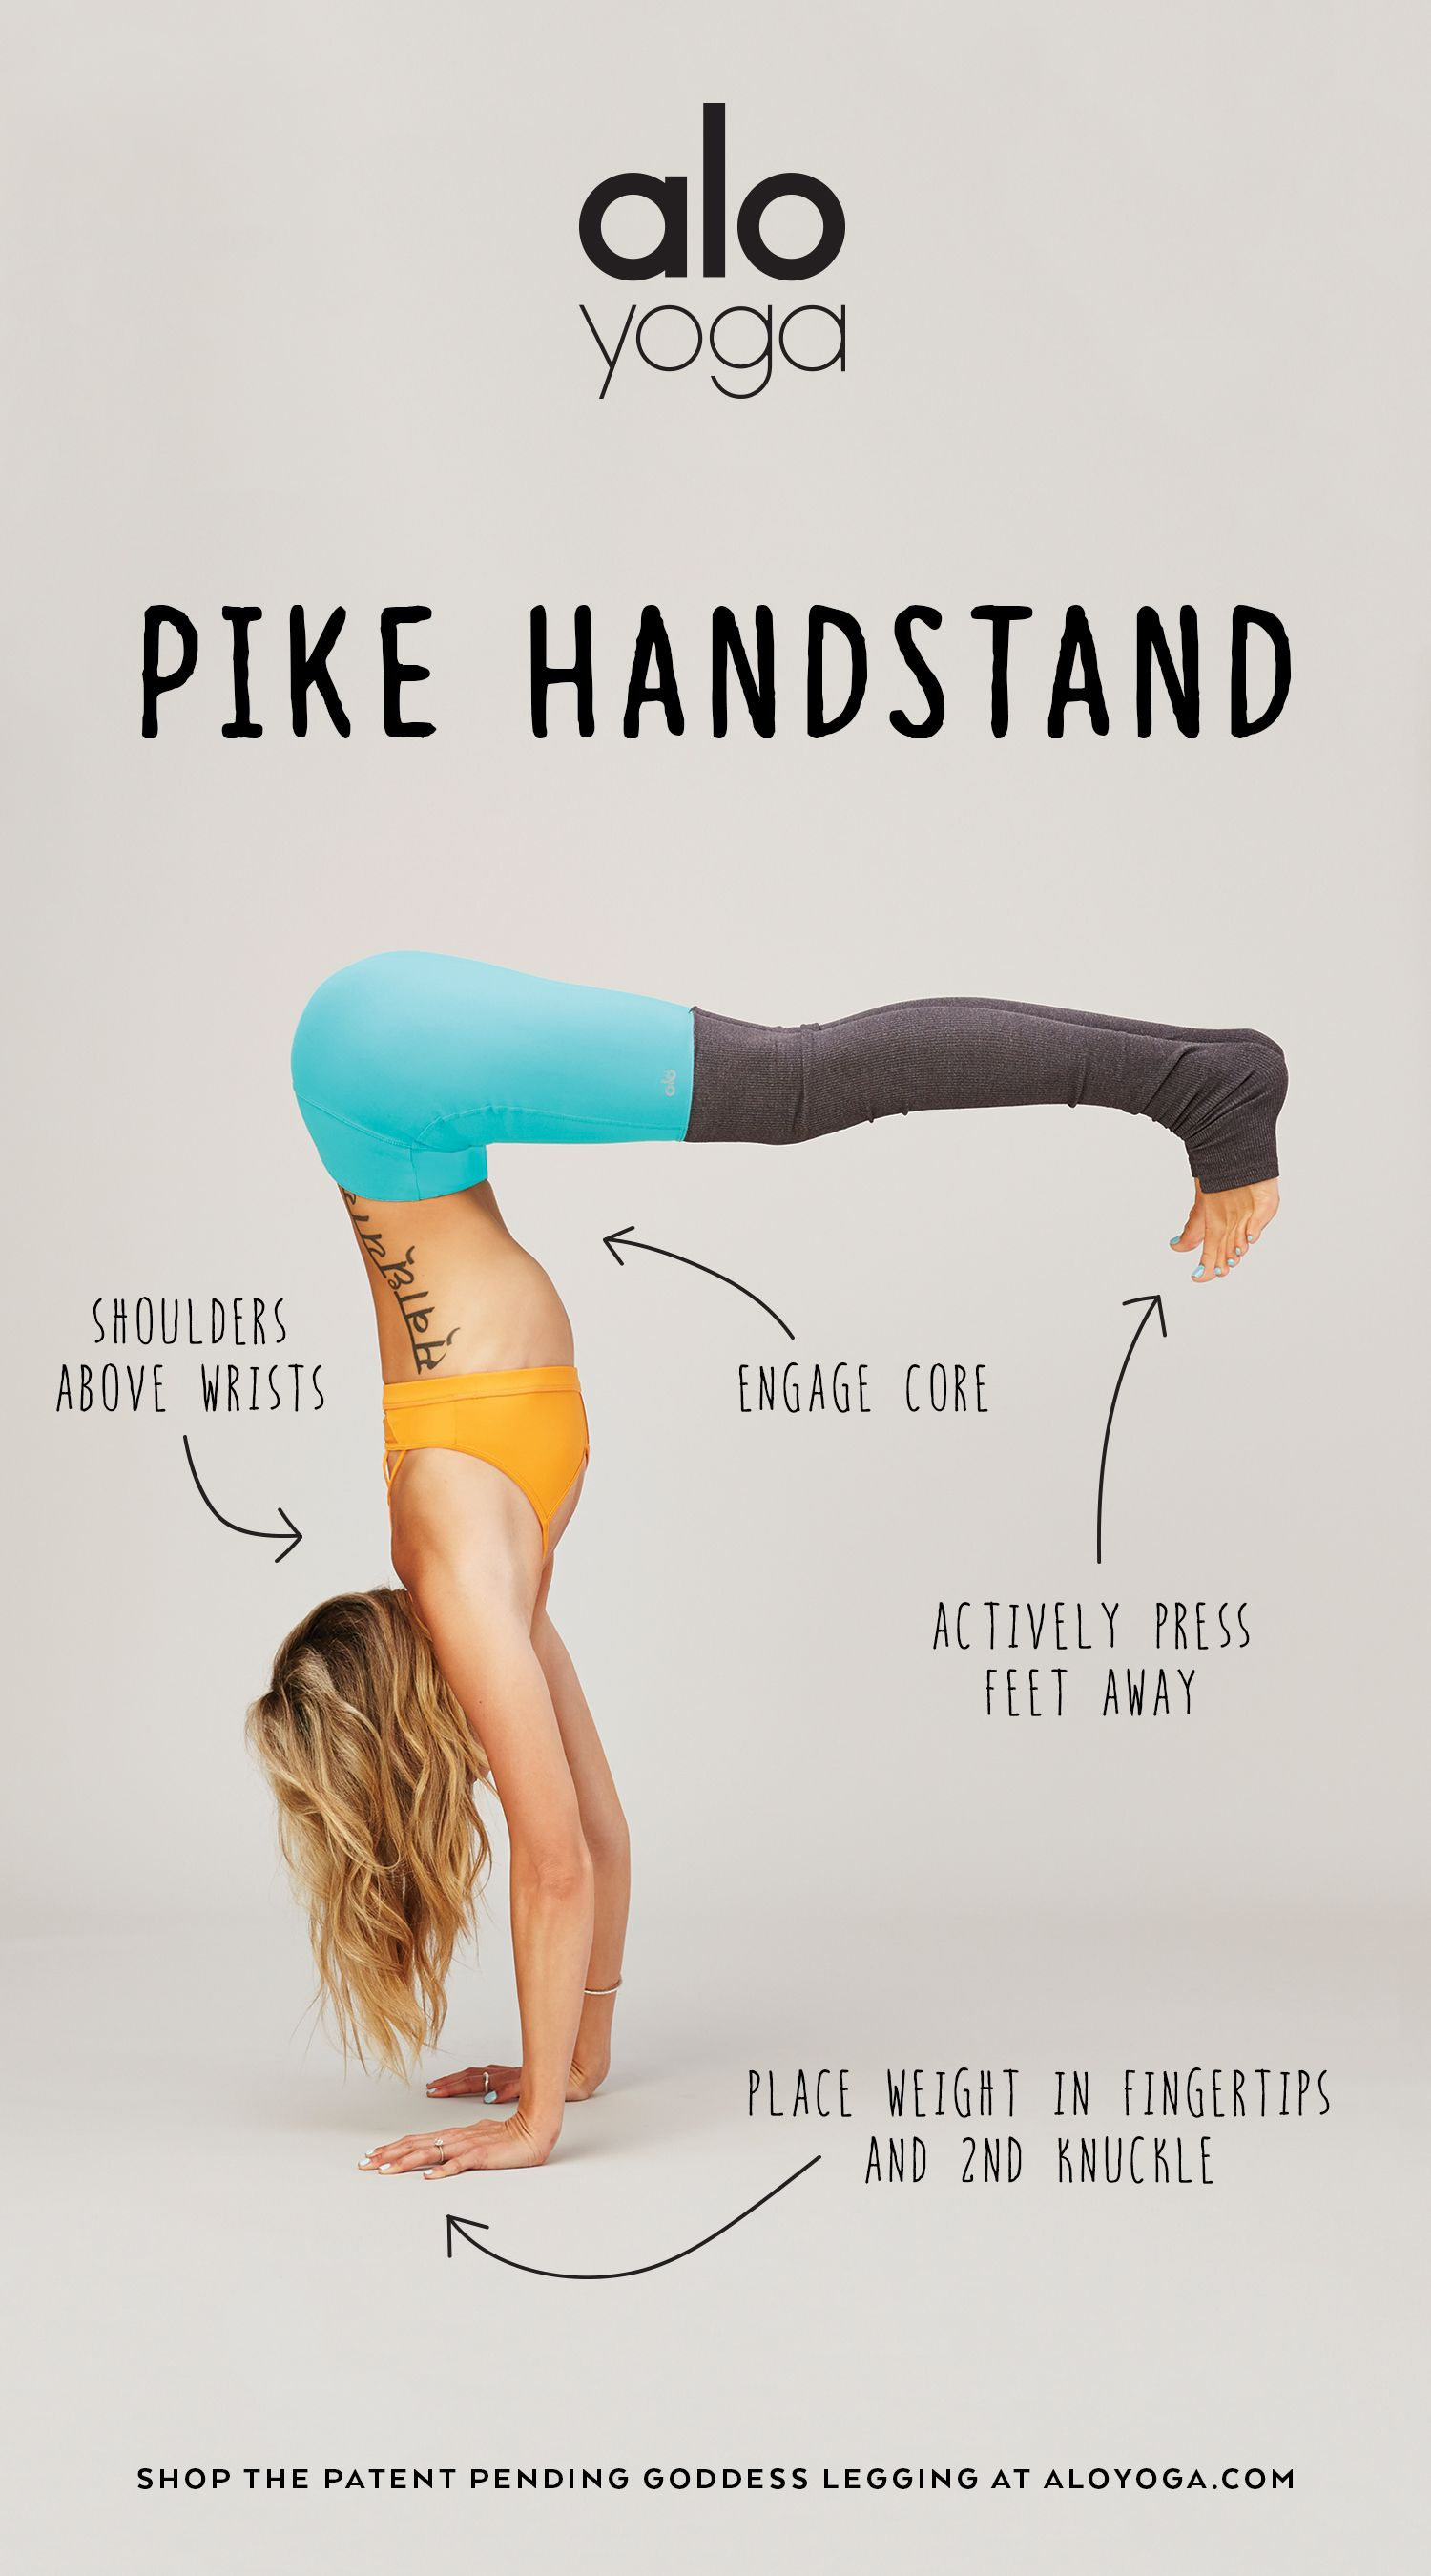 16+ How to learn yoga handstand ideas in 2021